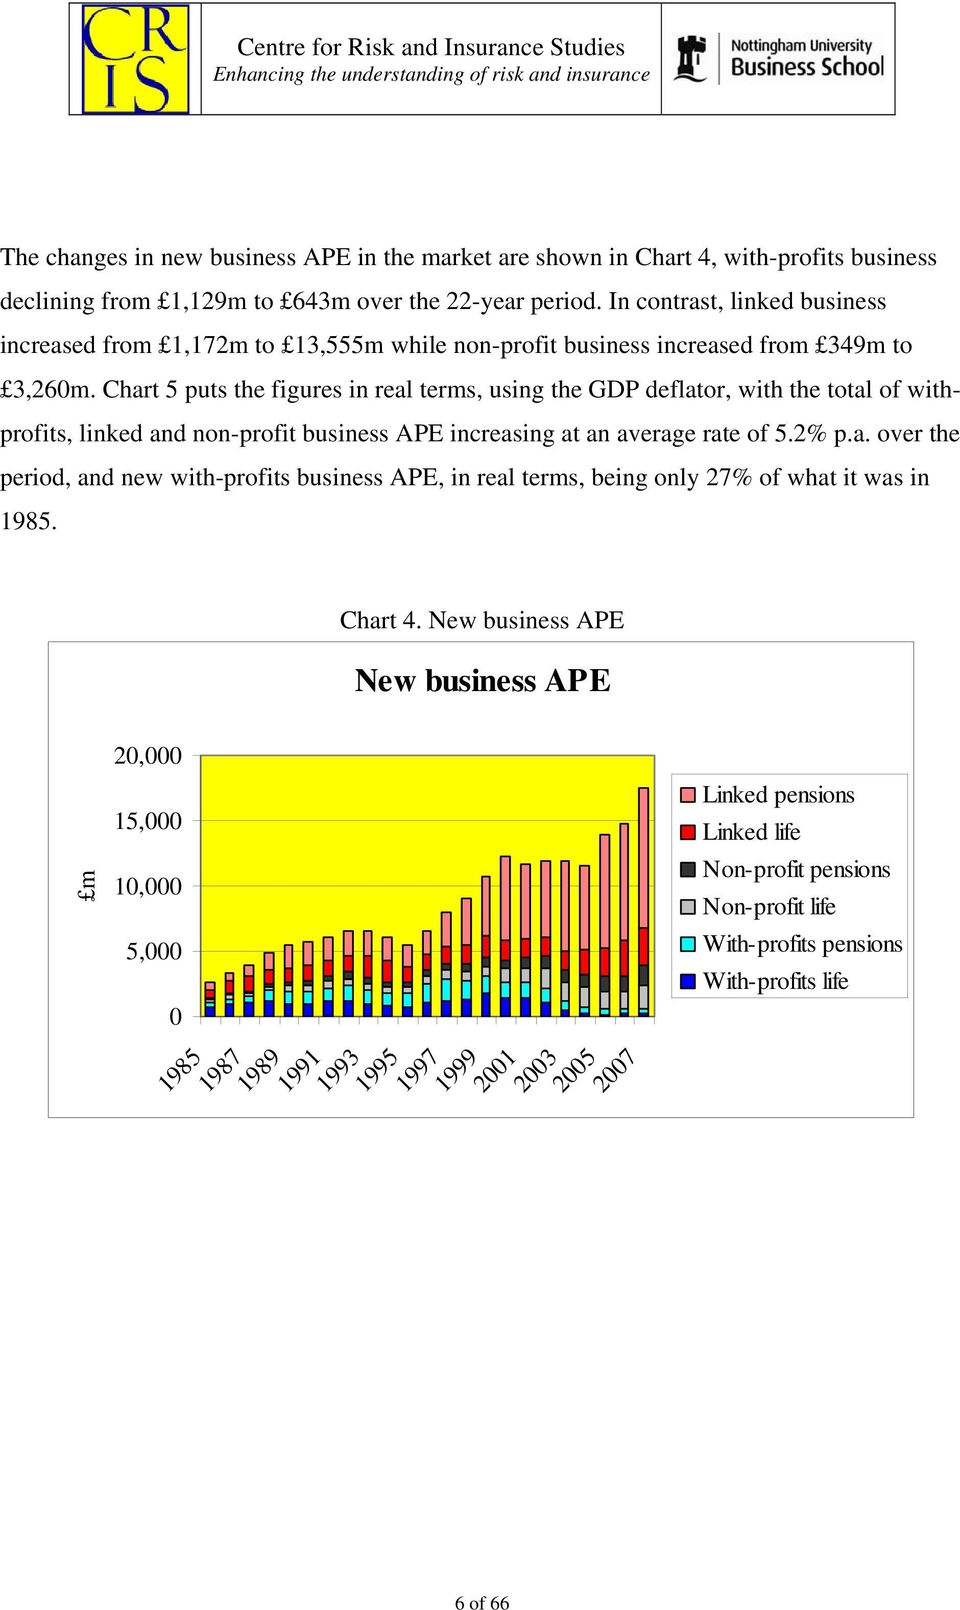 Chart 5 puts the figures in real terms, using the GDP deflator, with the total of withprofits, linked and non-profit business APE increasing at an average rate of 5.2% p.a. over the period, and new with-profits business APE, in real terms, being only 27% of what it was in 1985.